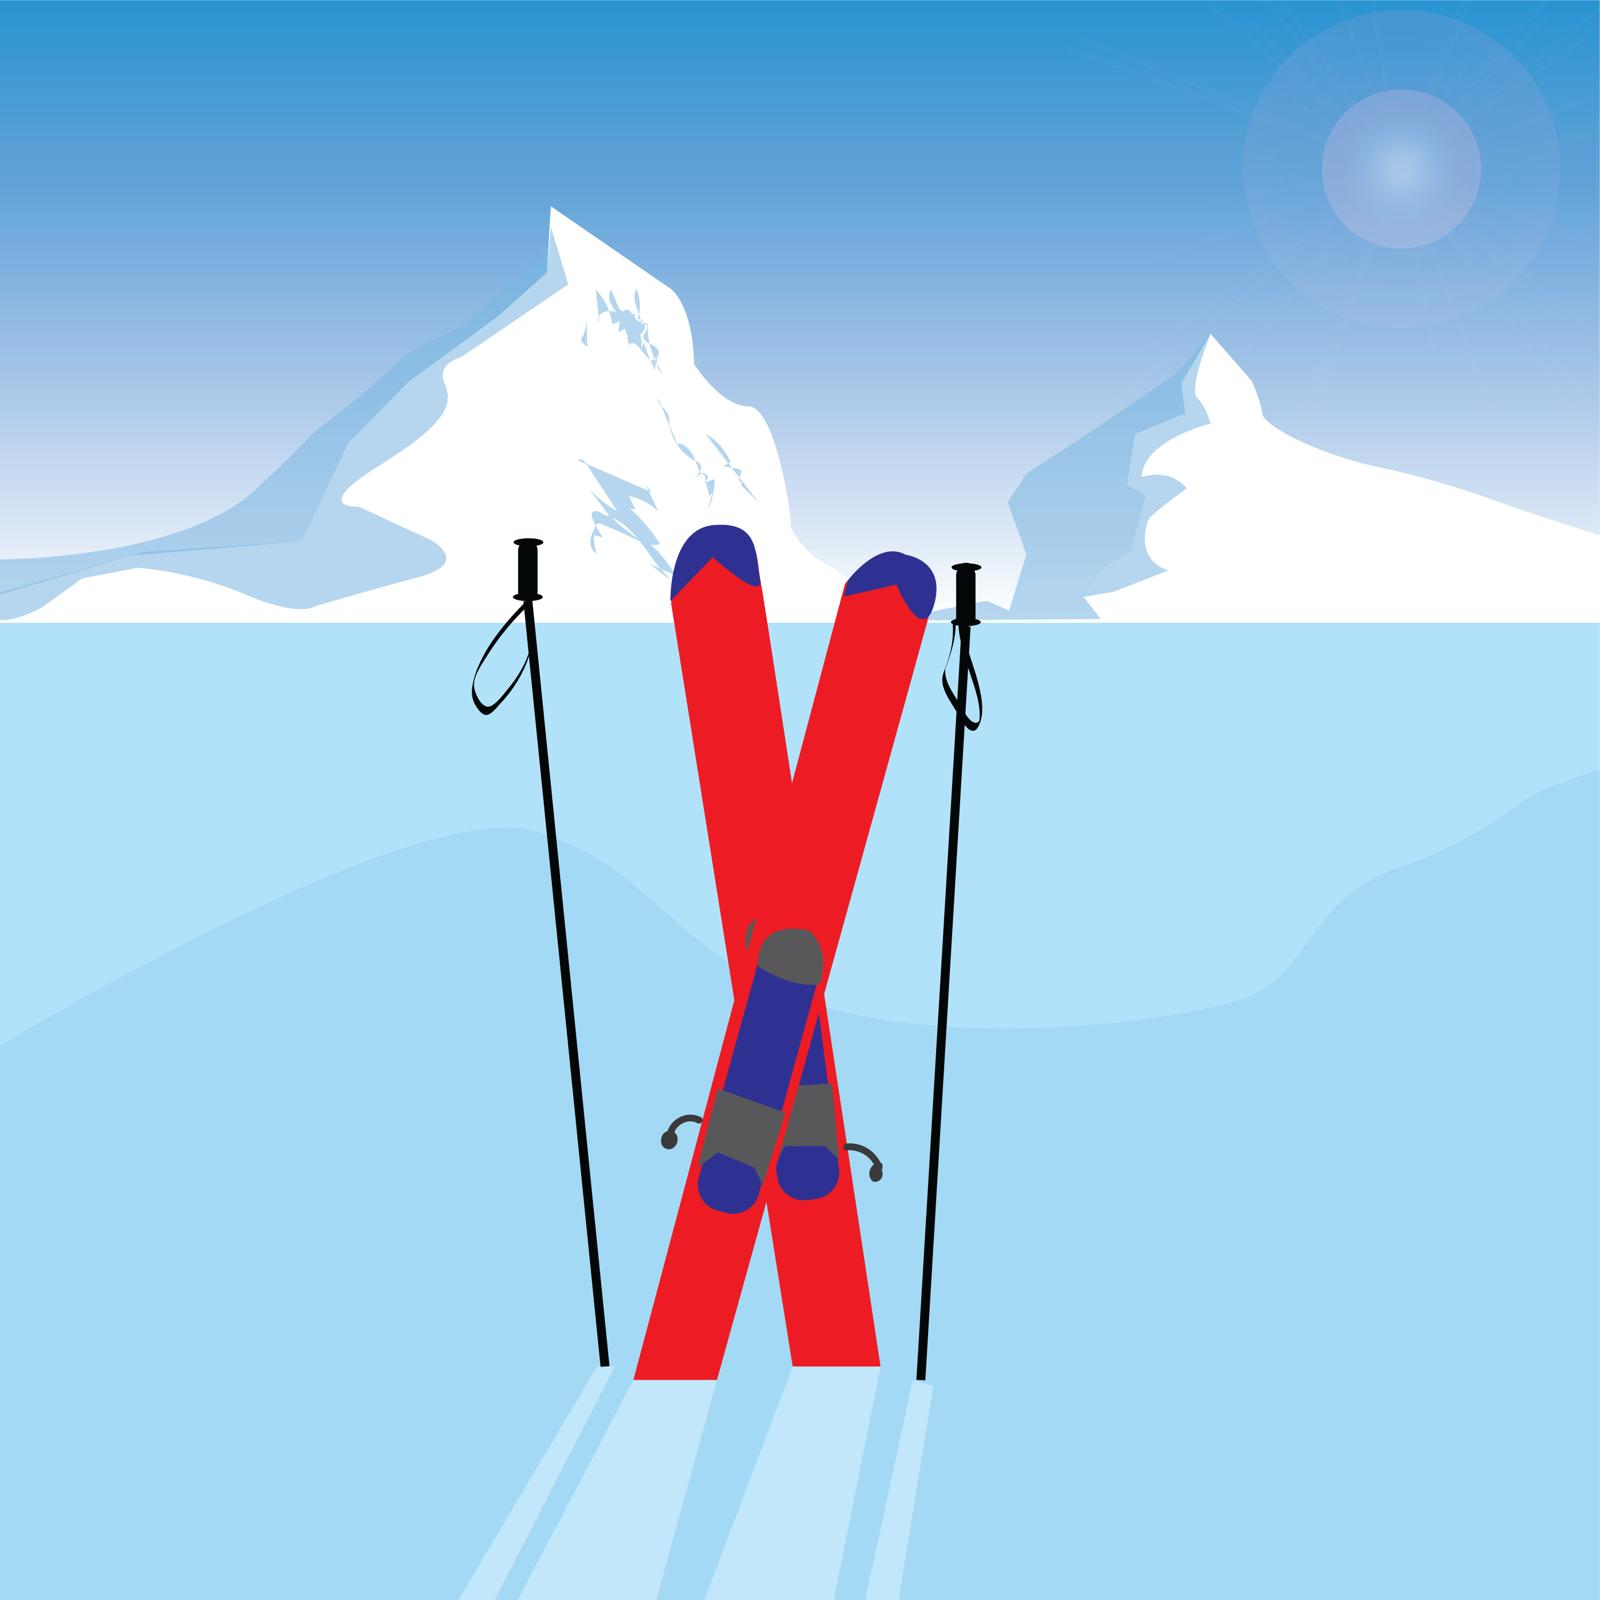 Gabrielle Archuleta illustration for 360 MAGAZINE skiing article